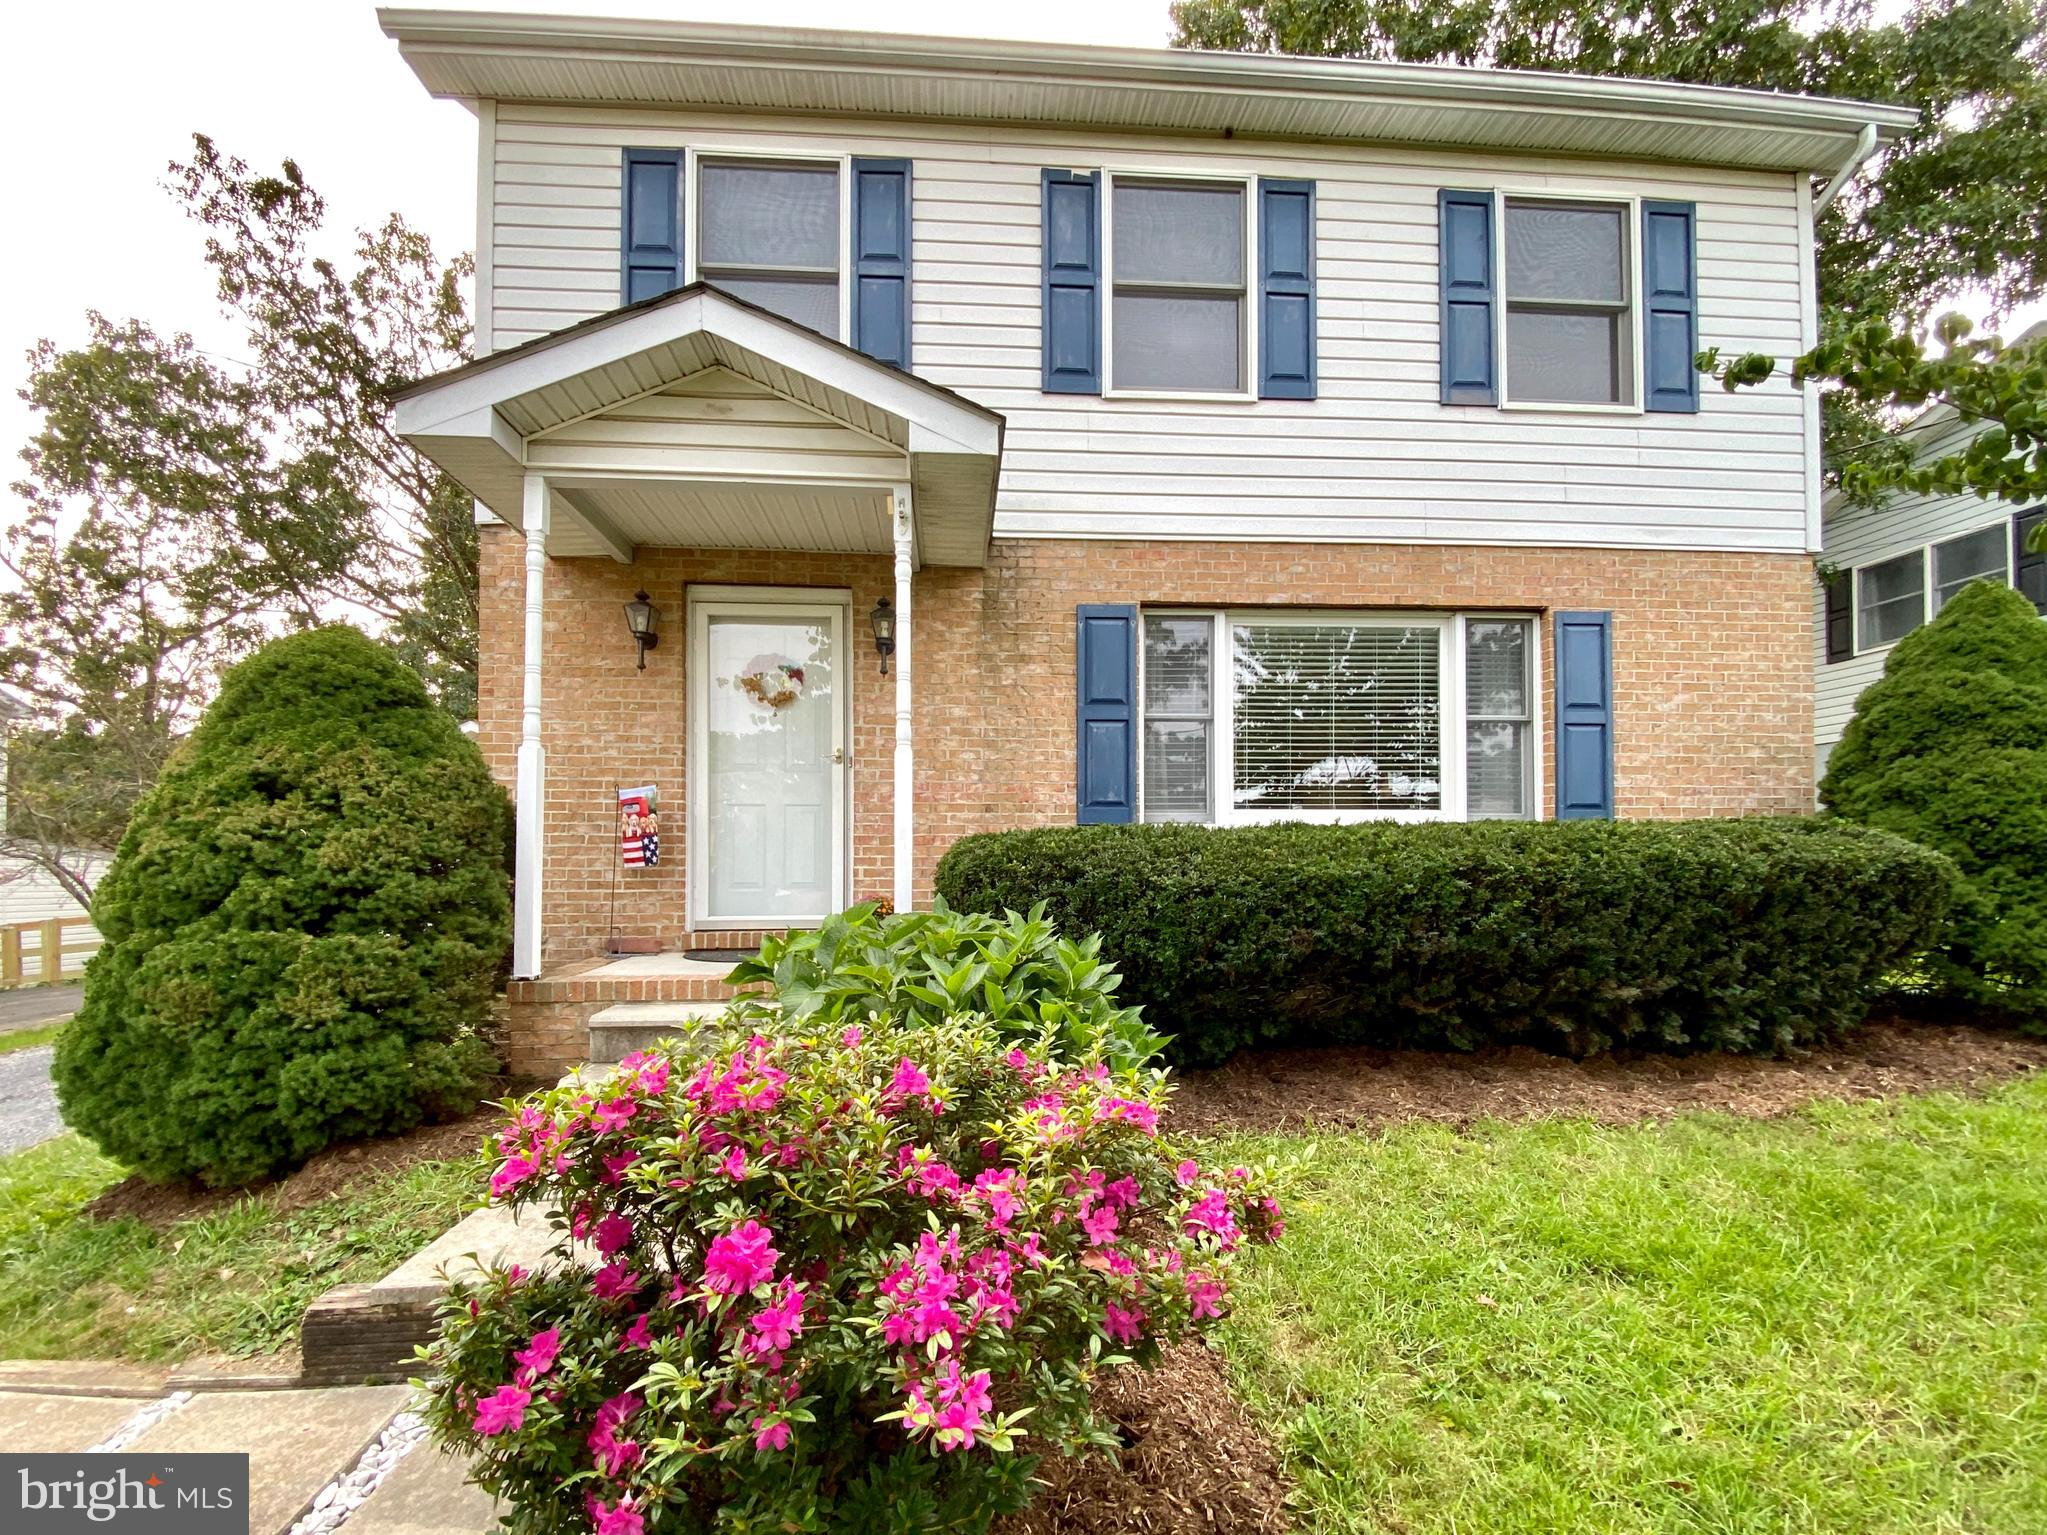 Very well maintained home in established neighborhood. Great commuter location, close to rt. 7, I 81